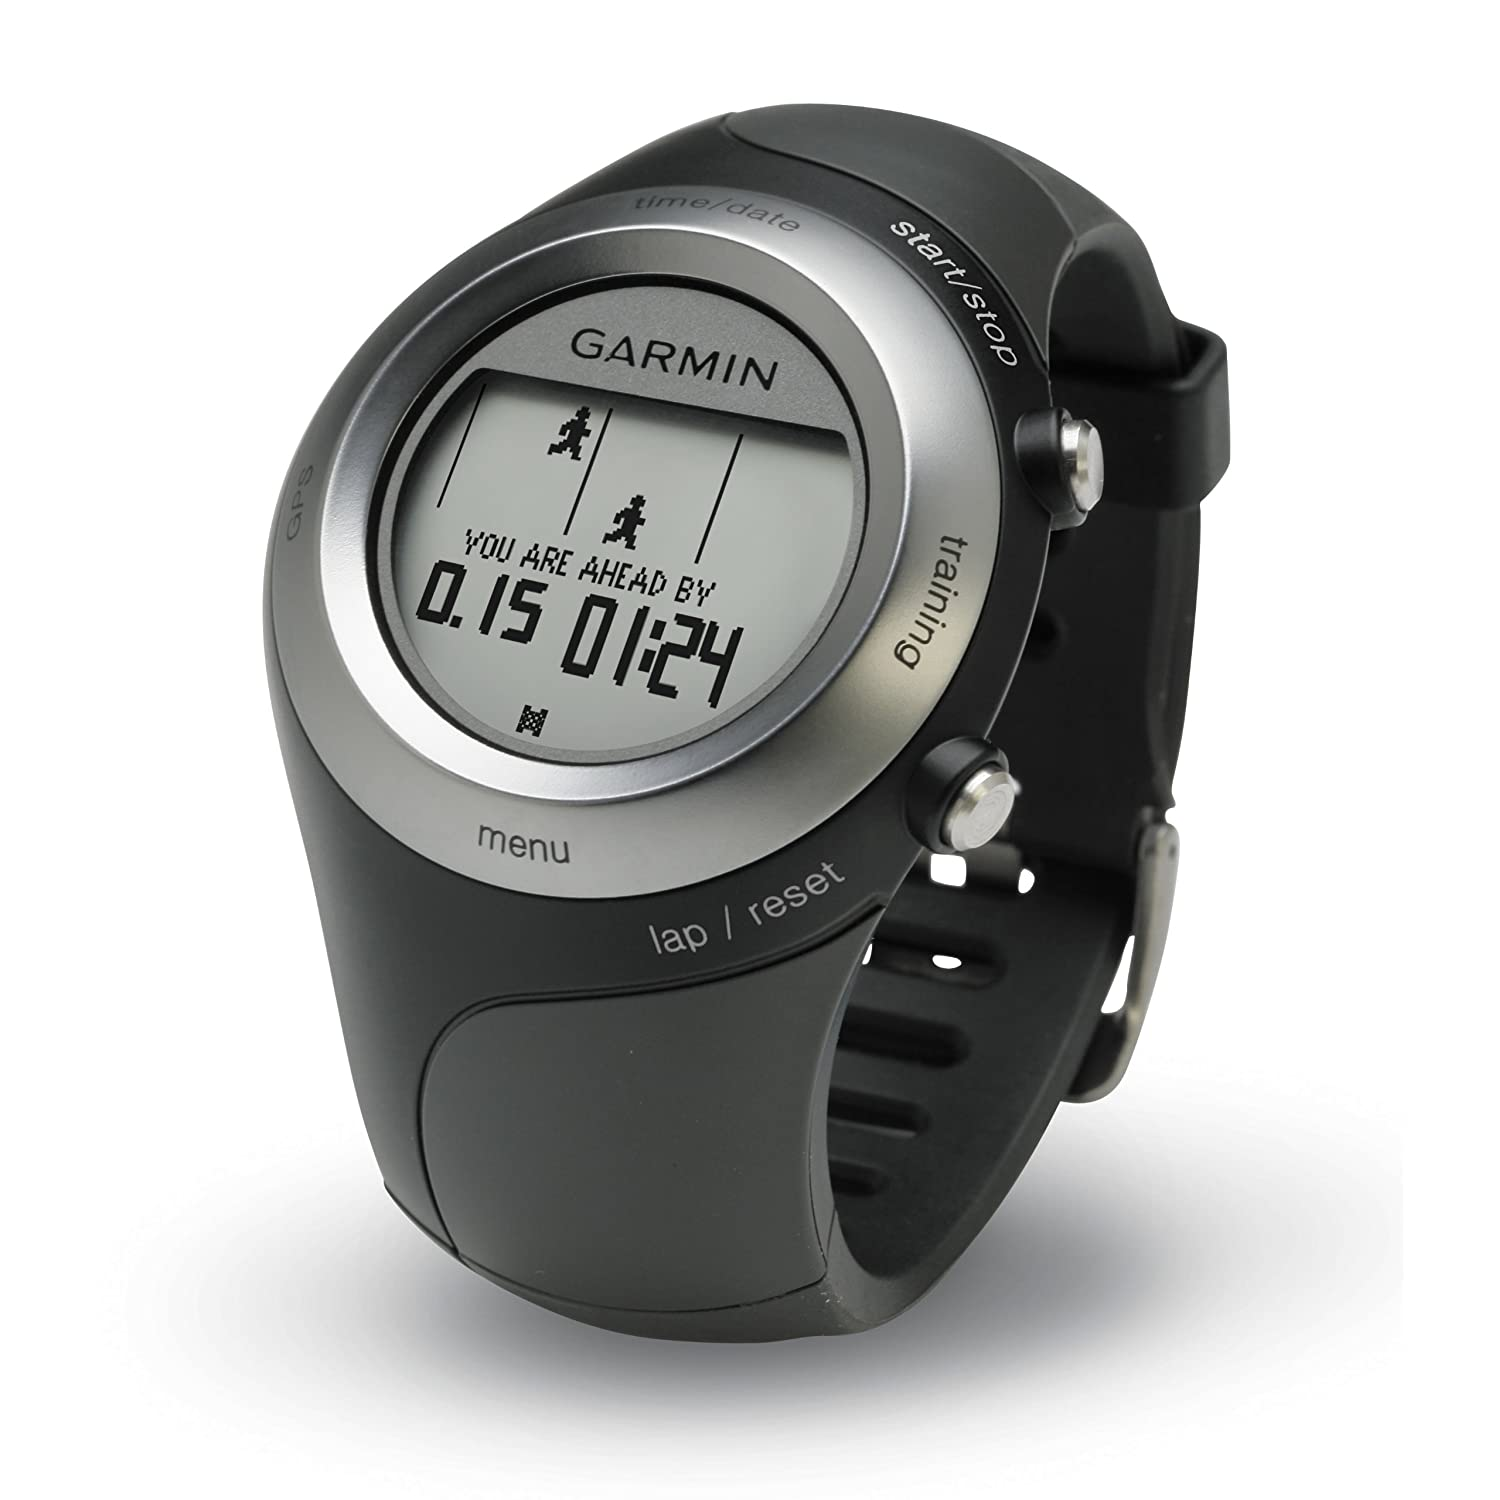 garmin forerunner 210 quick start manual